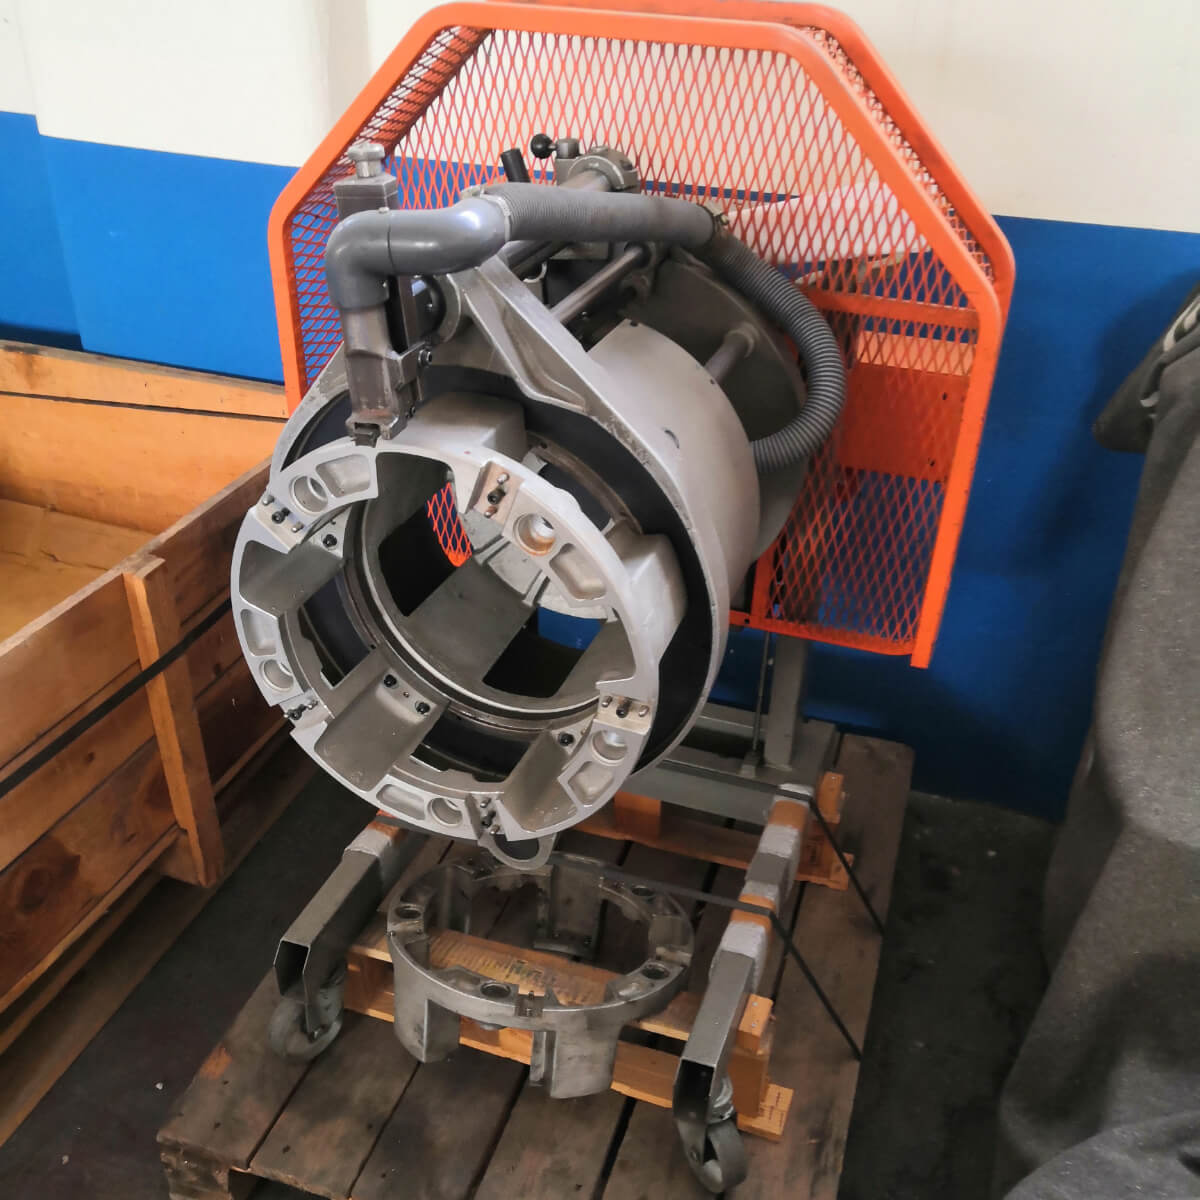 CAORLE TE 48 Used Brake Shoe Grinder